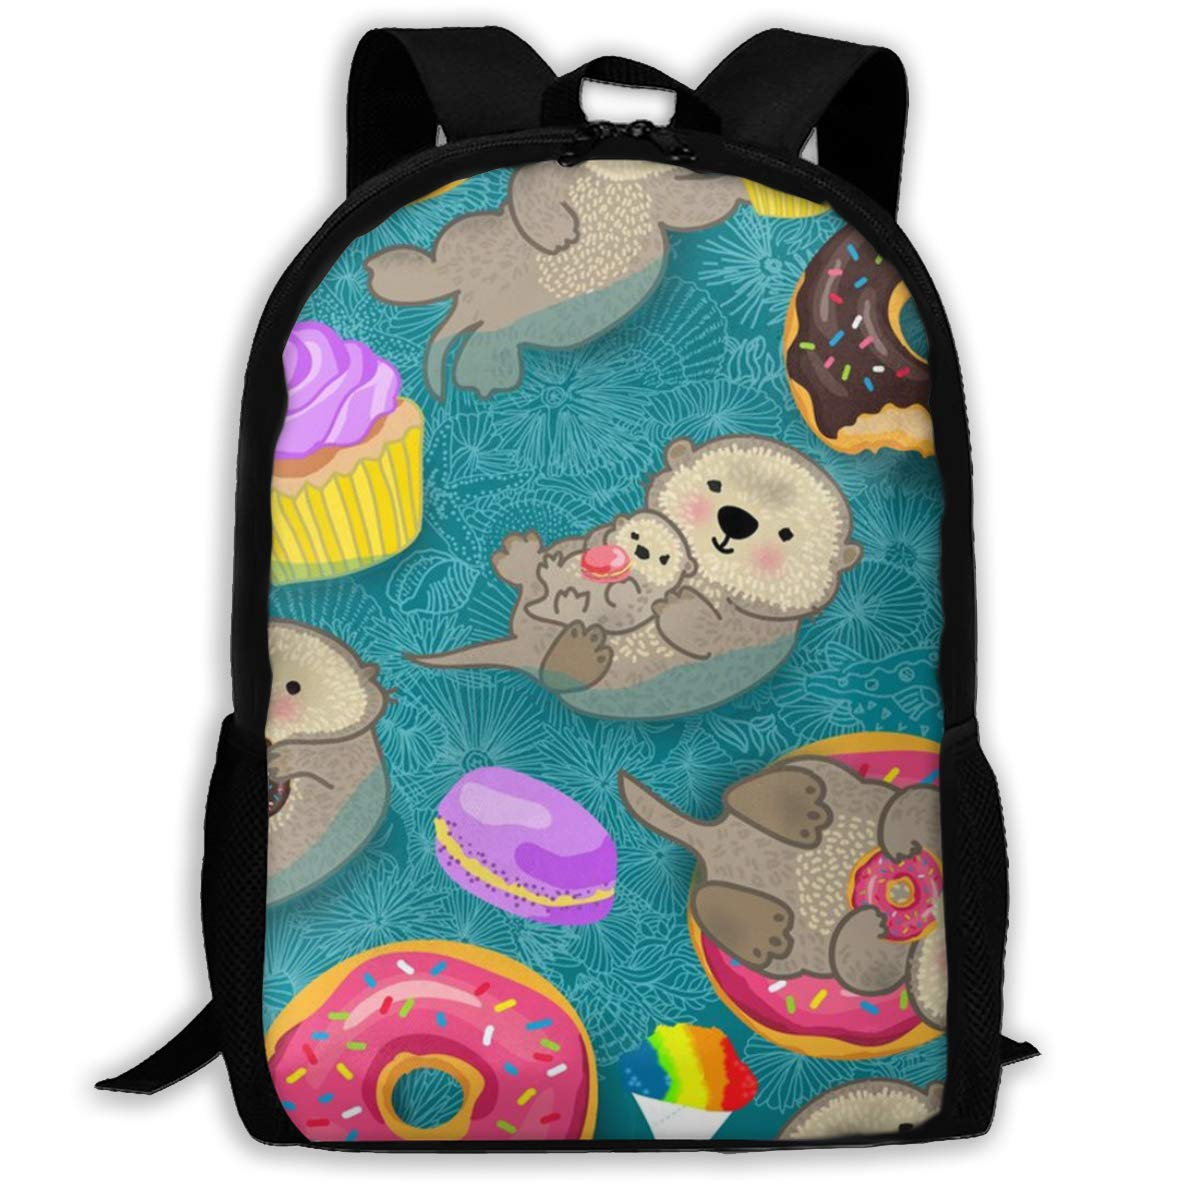 Mens Women & Teens Backpacks Funny bookbags Work daypacks Donut Cupcakes Baby Significant Otters Backpack Suitable for School,Camping,Travel,Outdoors by COLORFULSKY